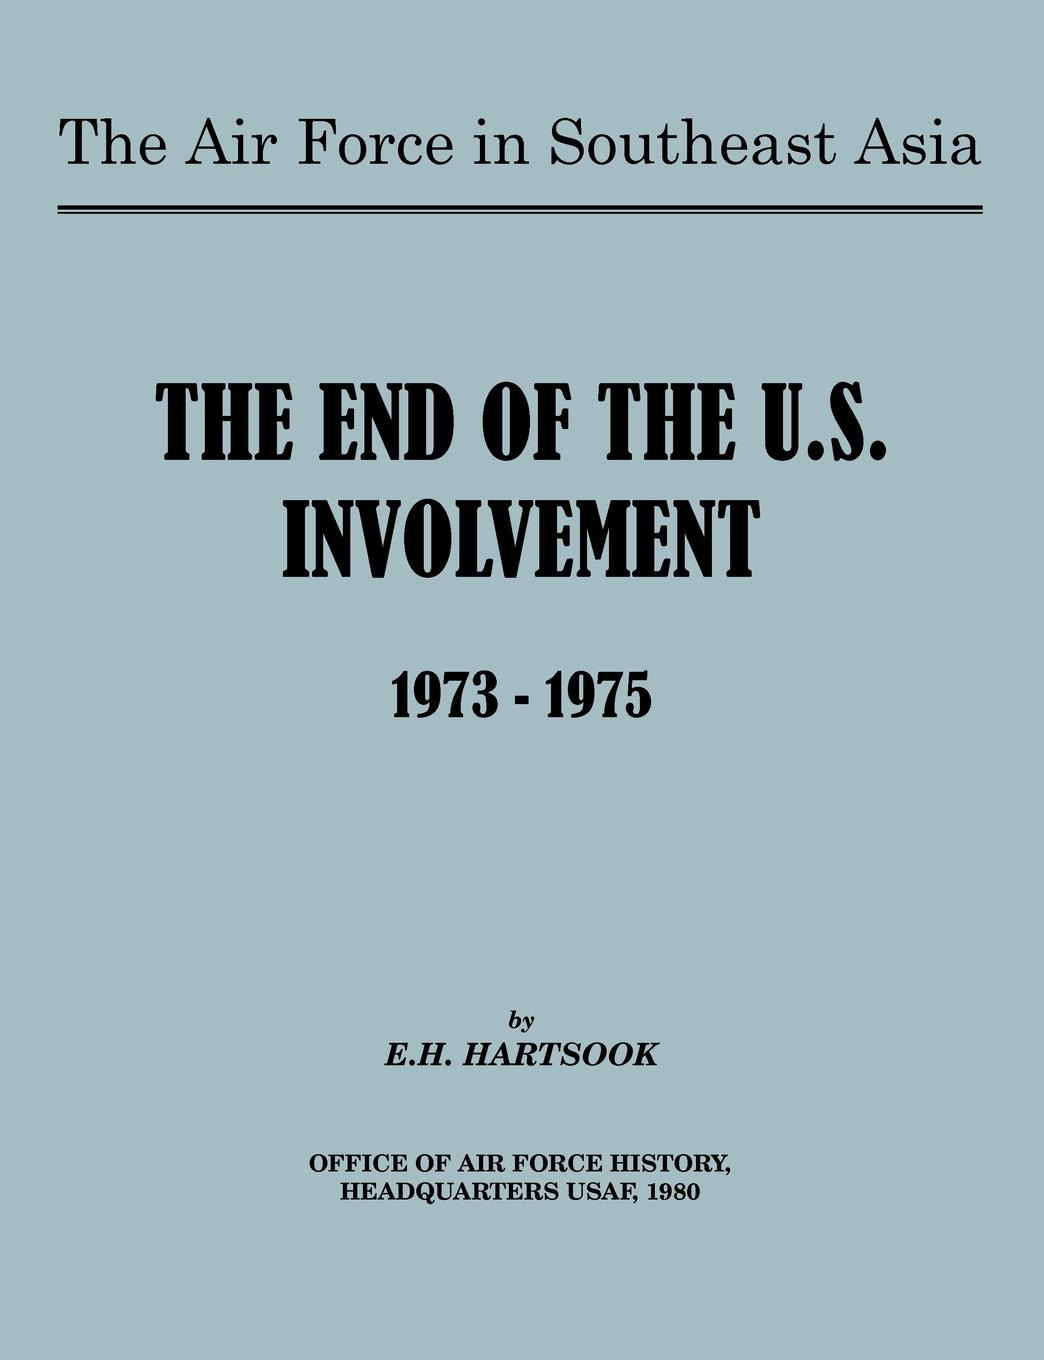 E H Hartsook, Office of Air Force History, United States Air Force The Air Force in Southeast Asia. The End of U.S. Involvement 1973-1975